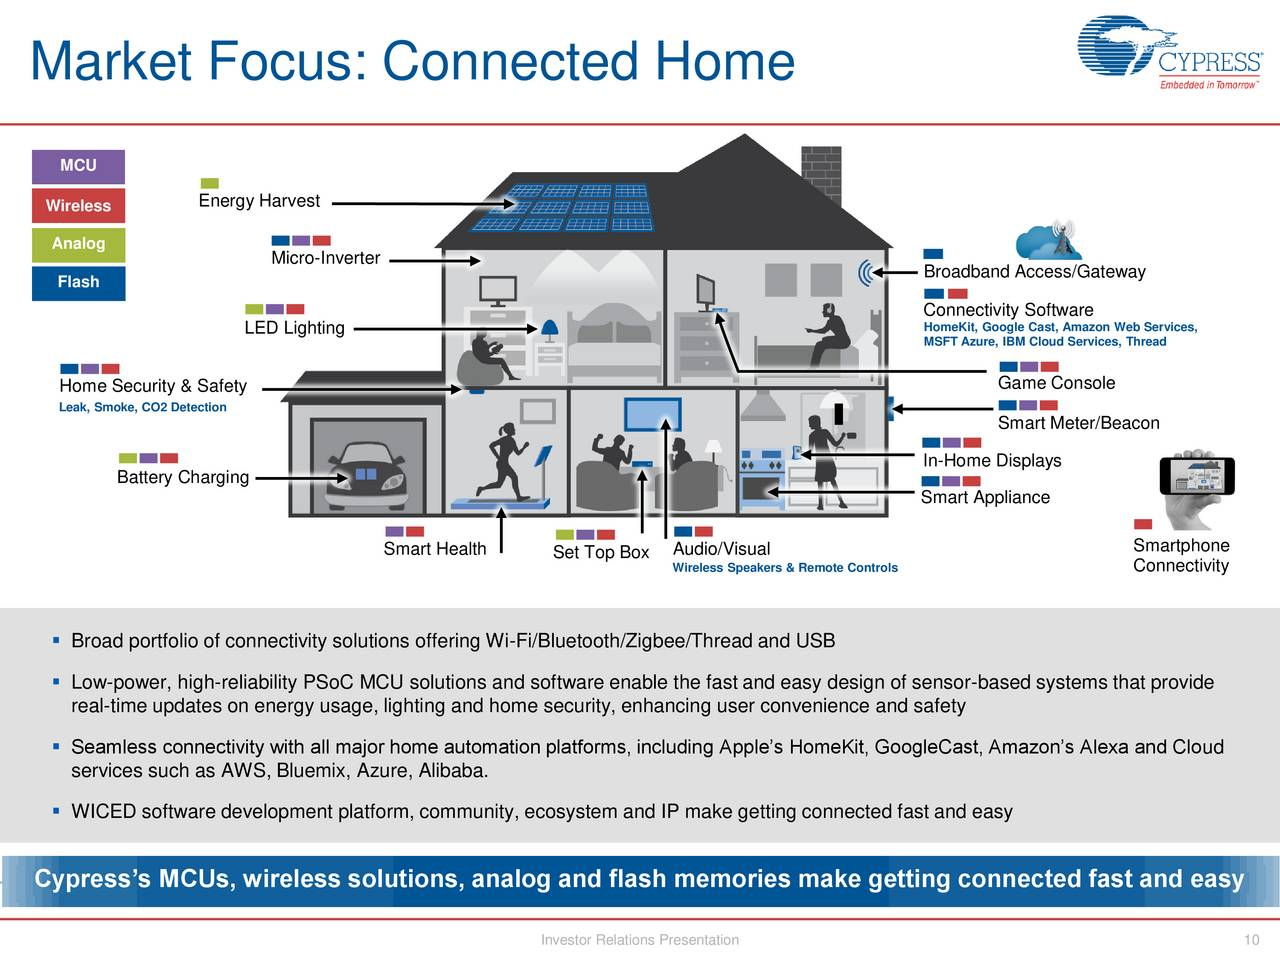 connected m2m home appliance market in Connected home appliance companies are focusing on the untapped consumer segments to boost estimated penetration of various segments in smart home m2m market 2020.